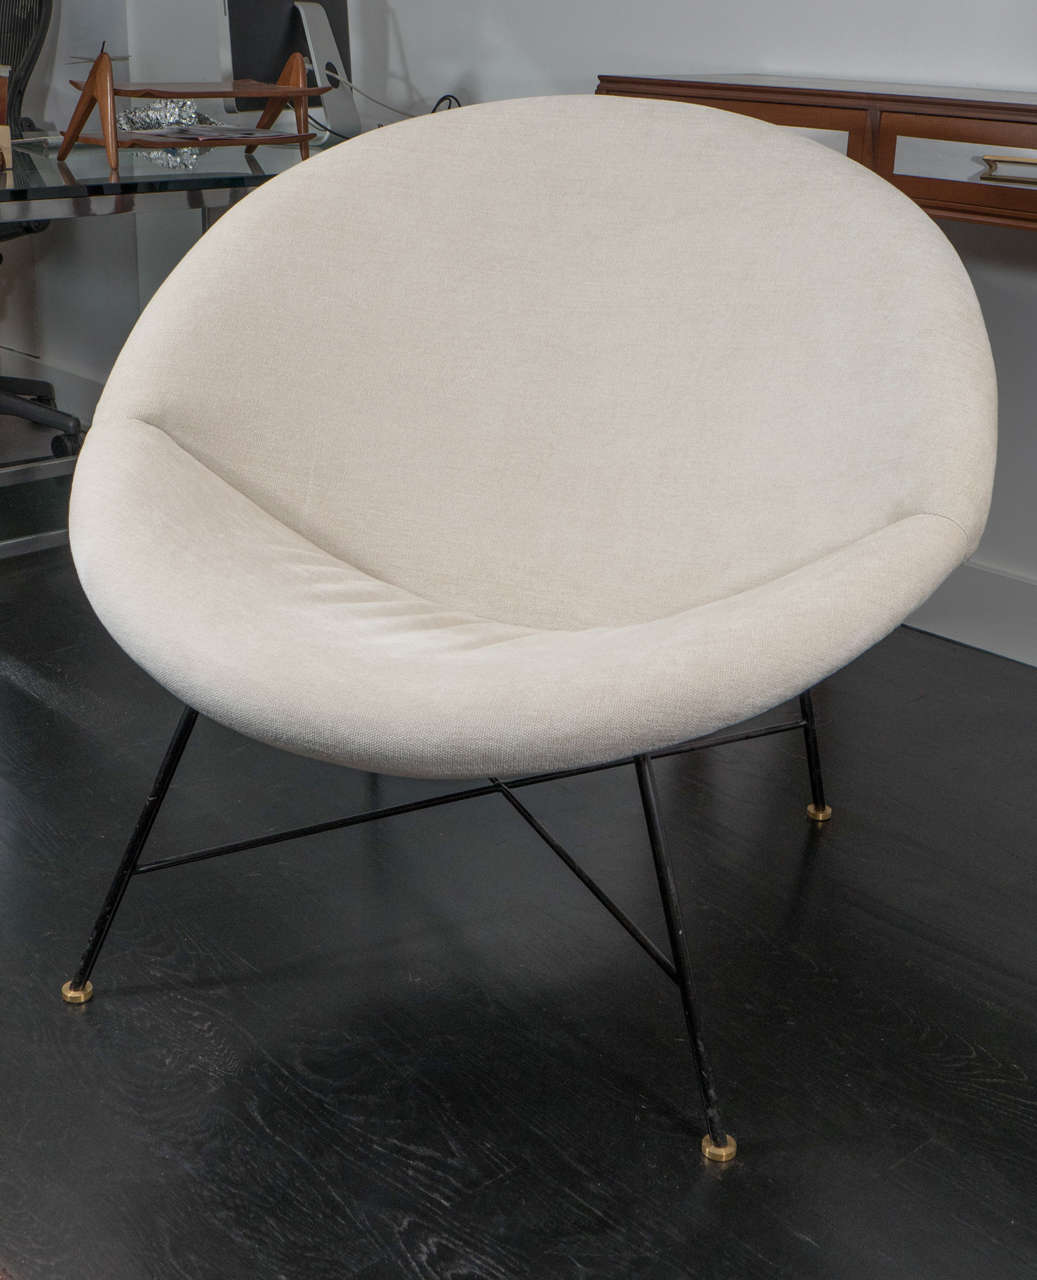 Pair of 1970s chairs designed in the style of Pierre Paulin. Round seat with middle seam on iron legs with brass feet.